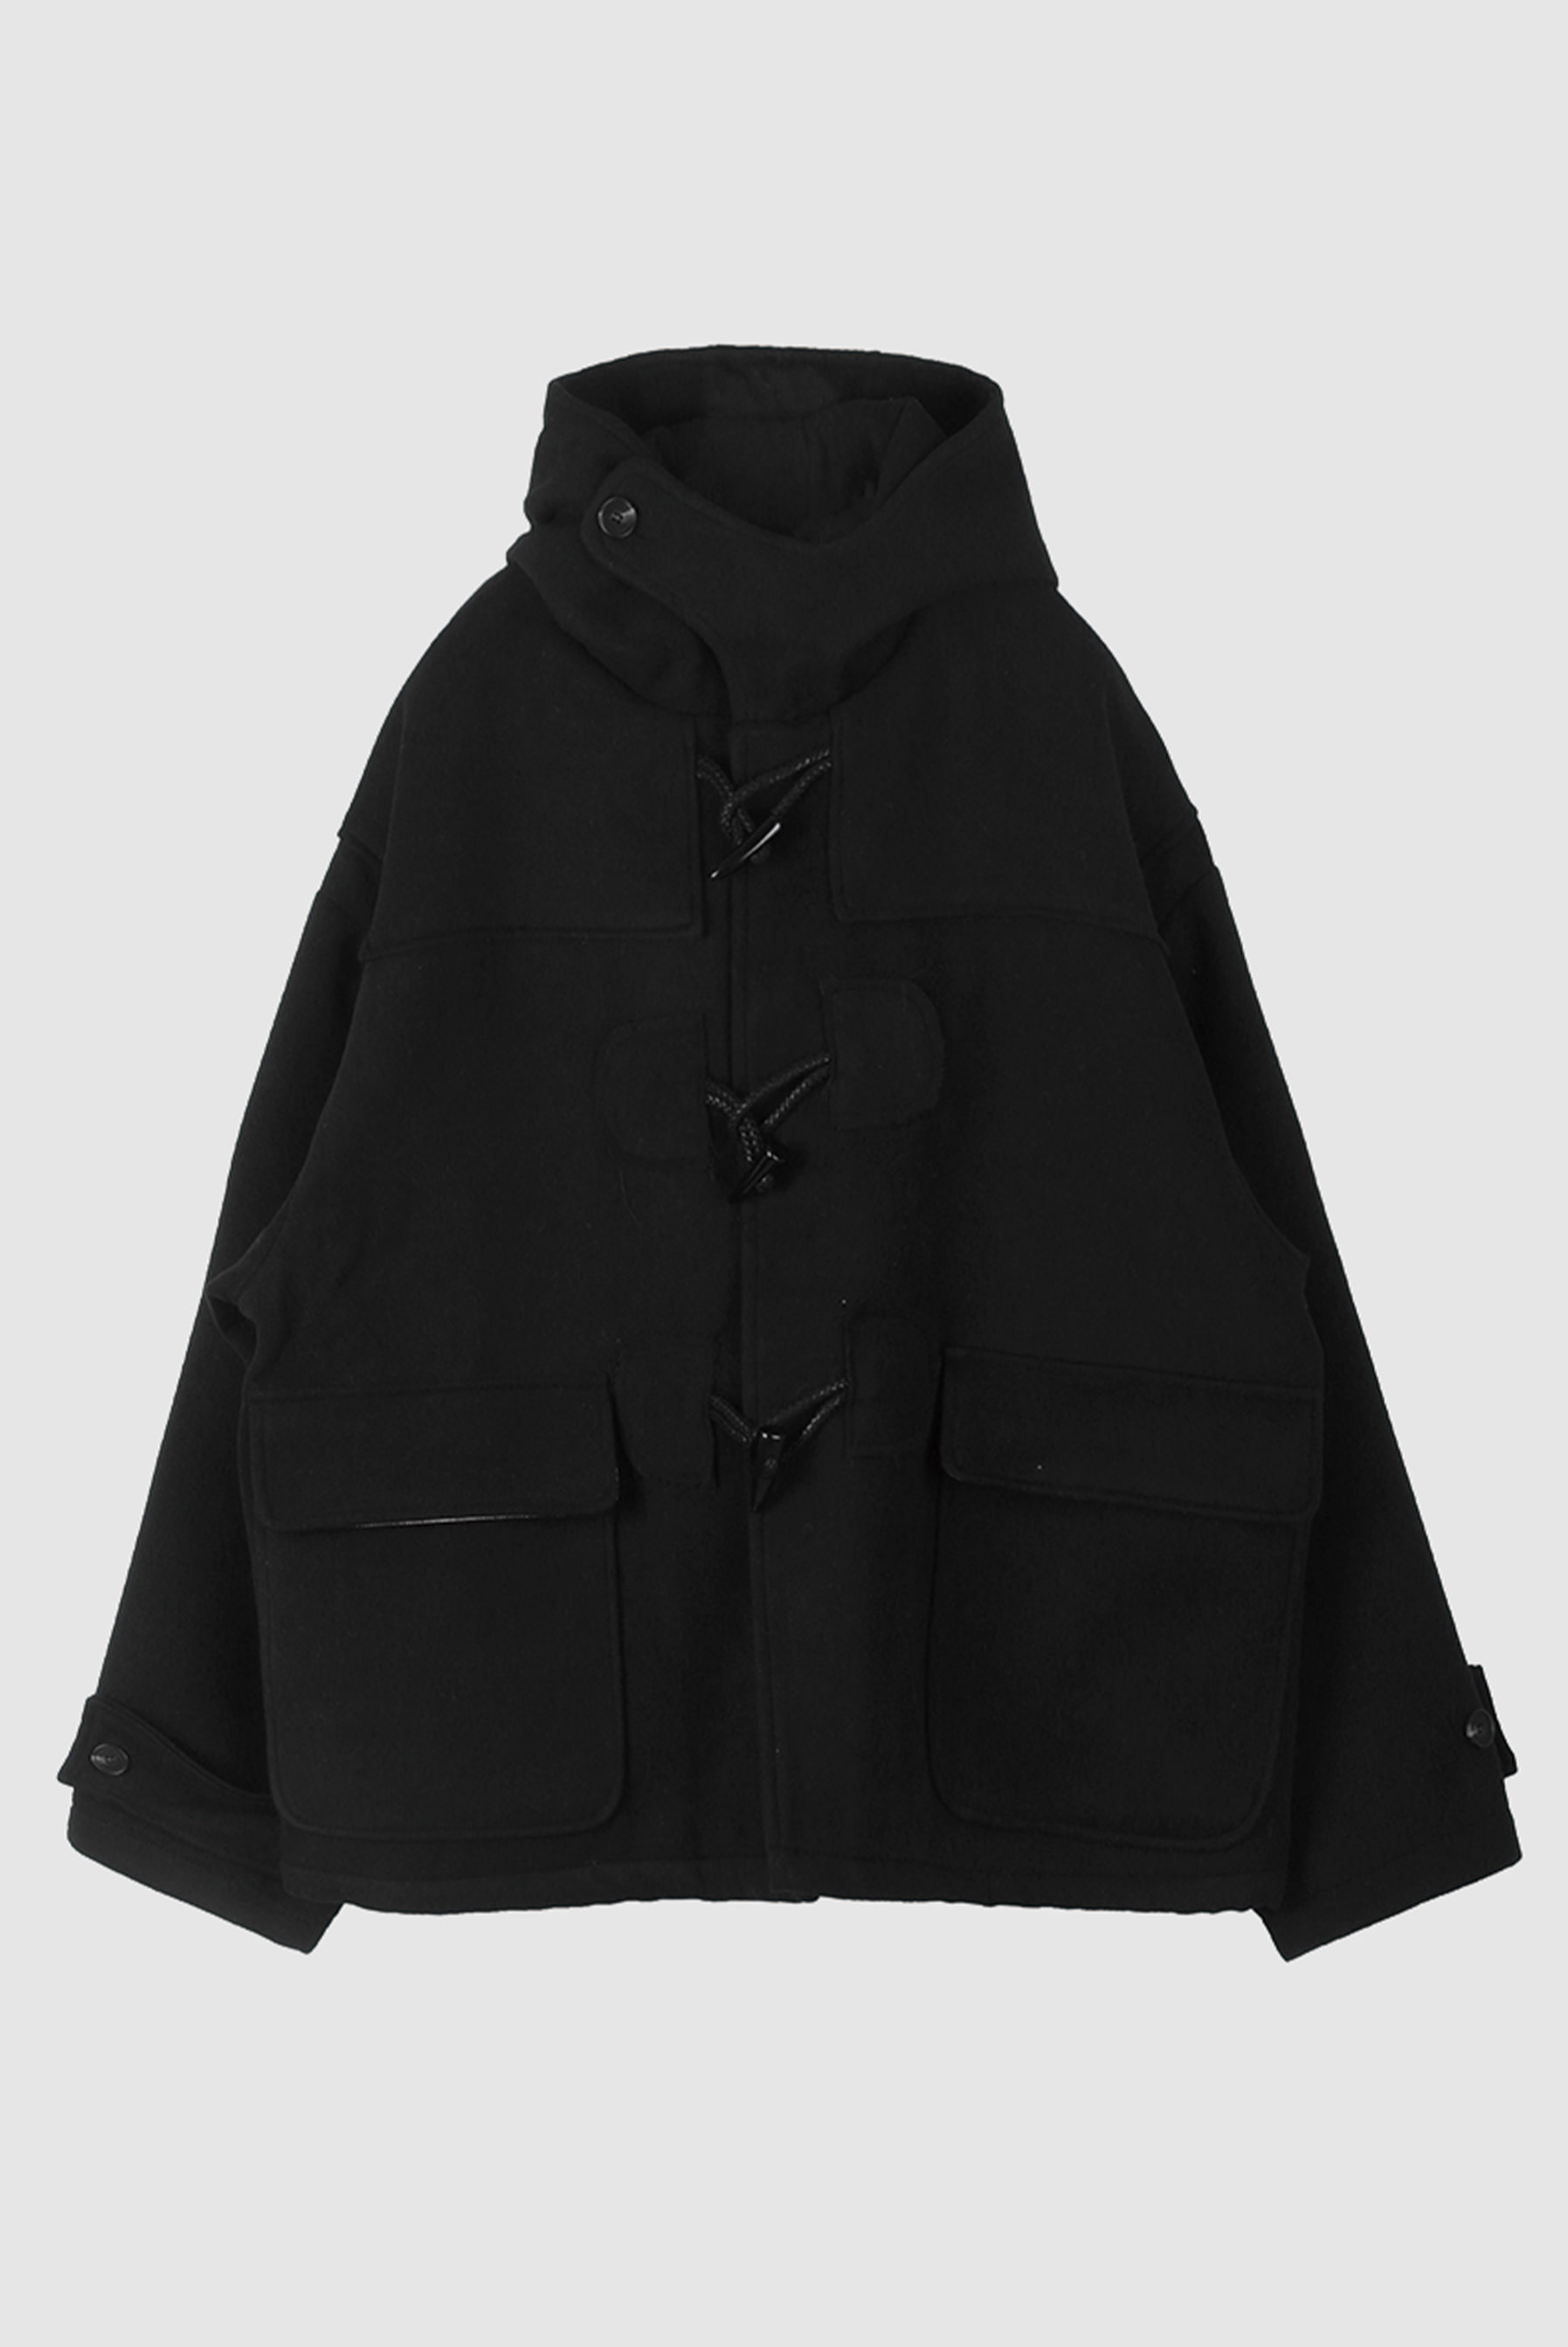 Raw Heavy Duffel_Coat